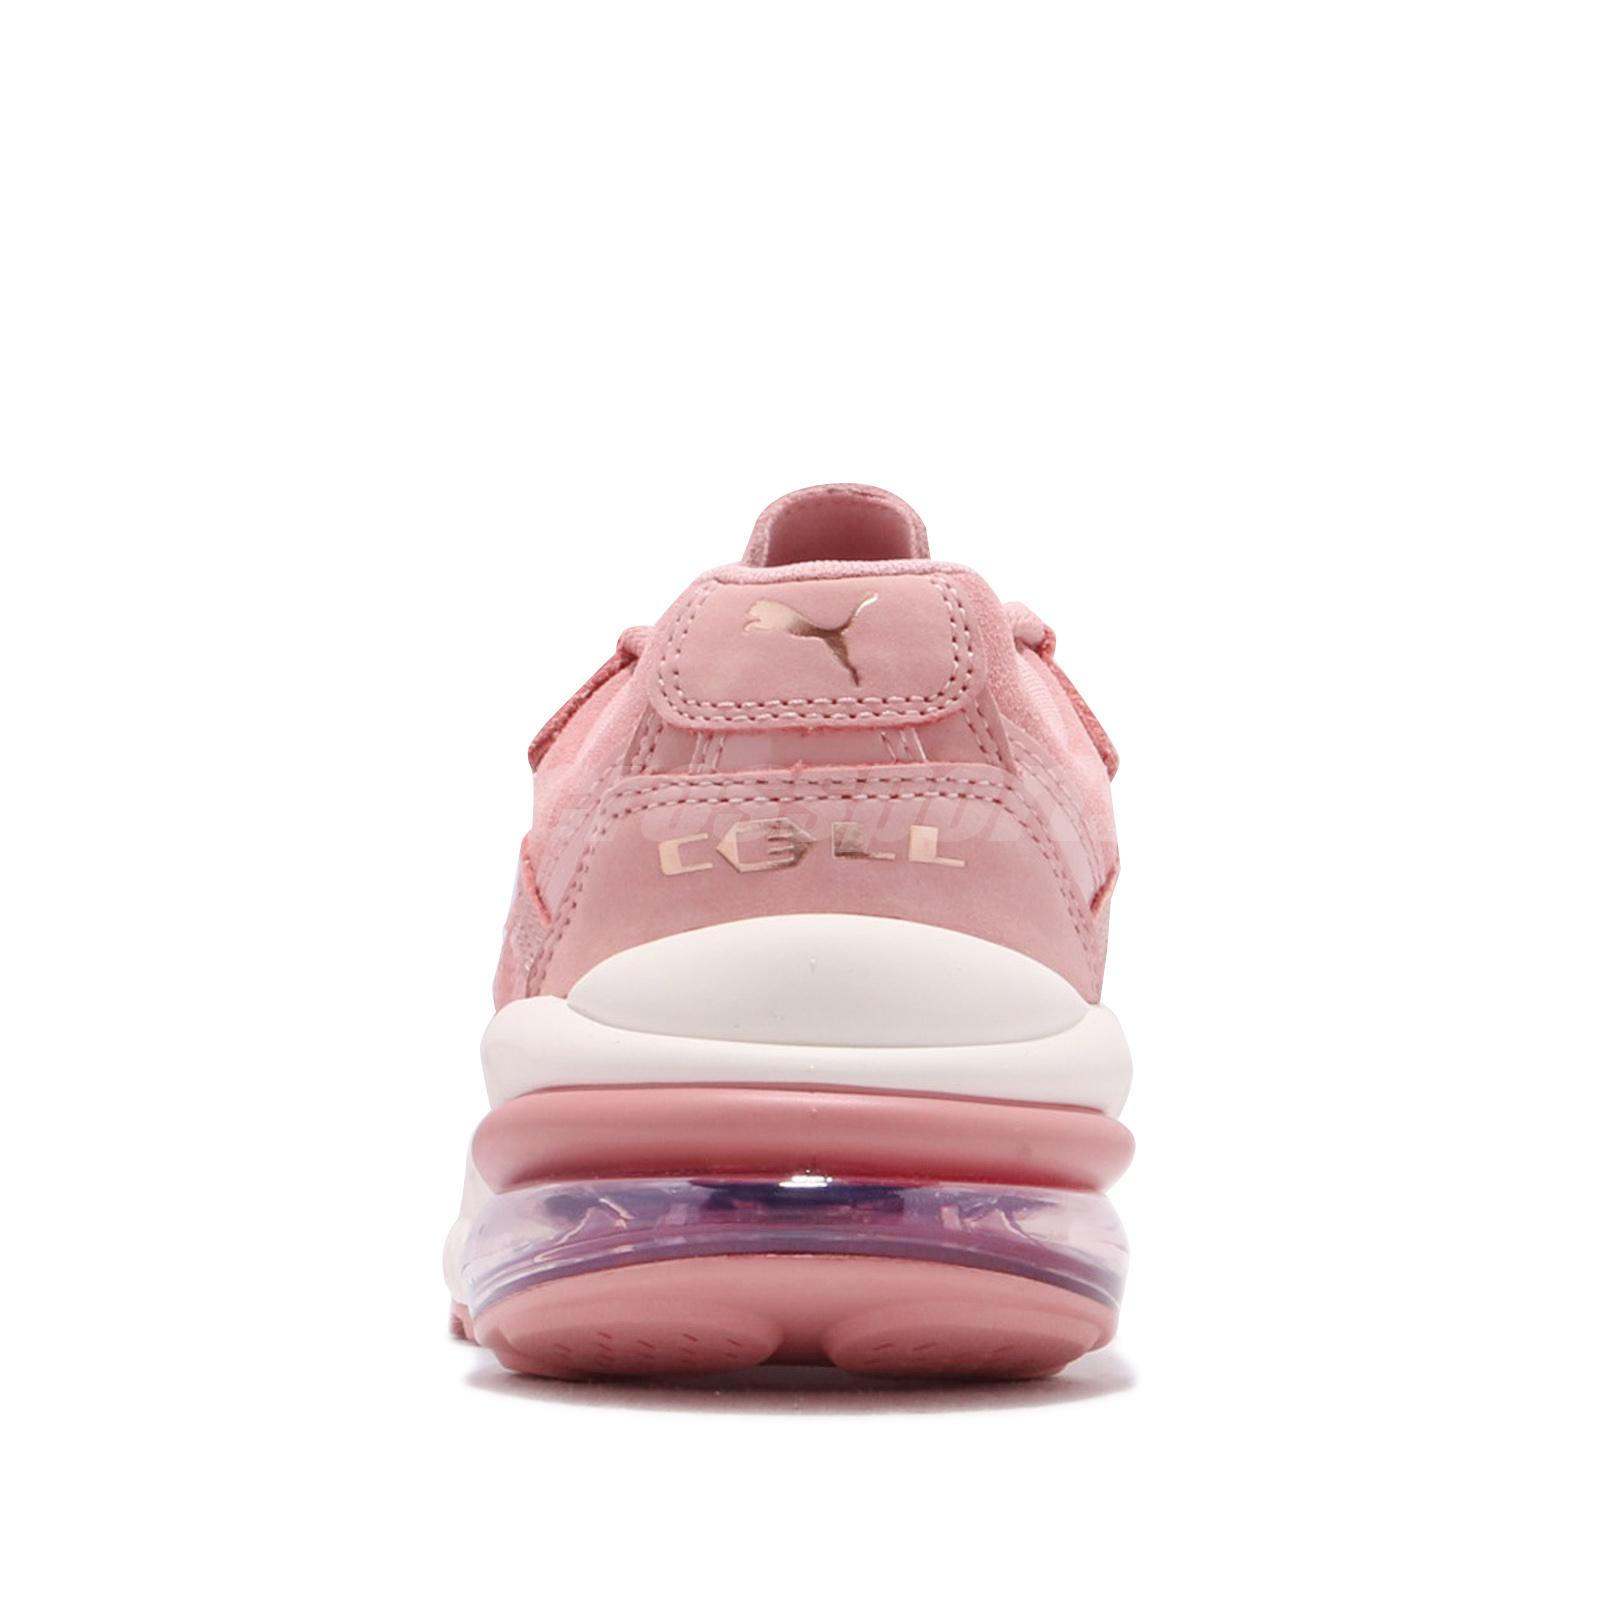 Details about Puma Cell Venom Patent Wns Bridal Rose Marshmallow Women  Running Shoes 369654-01